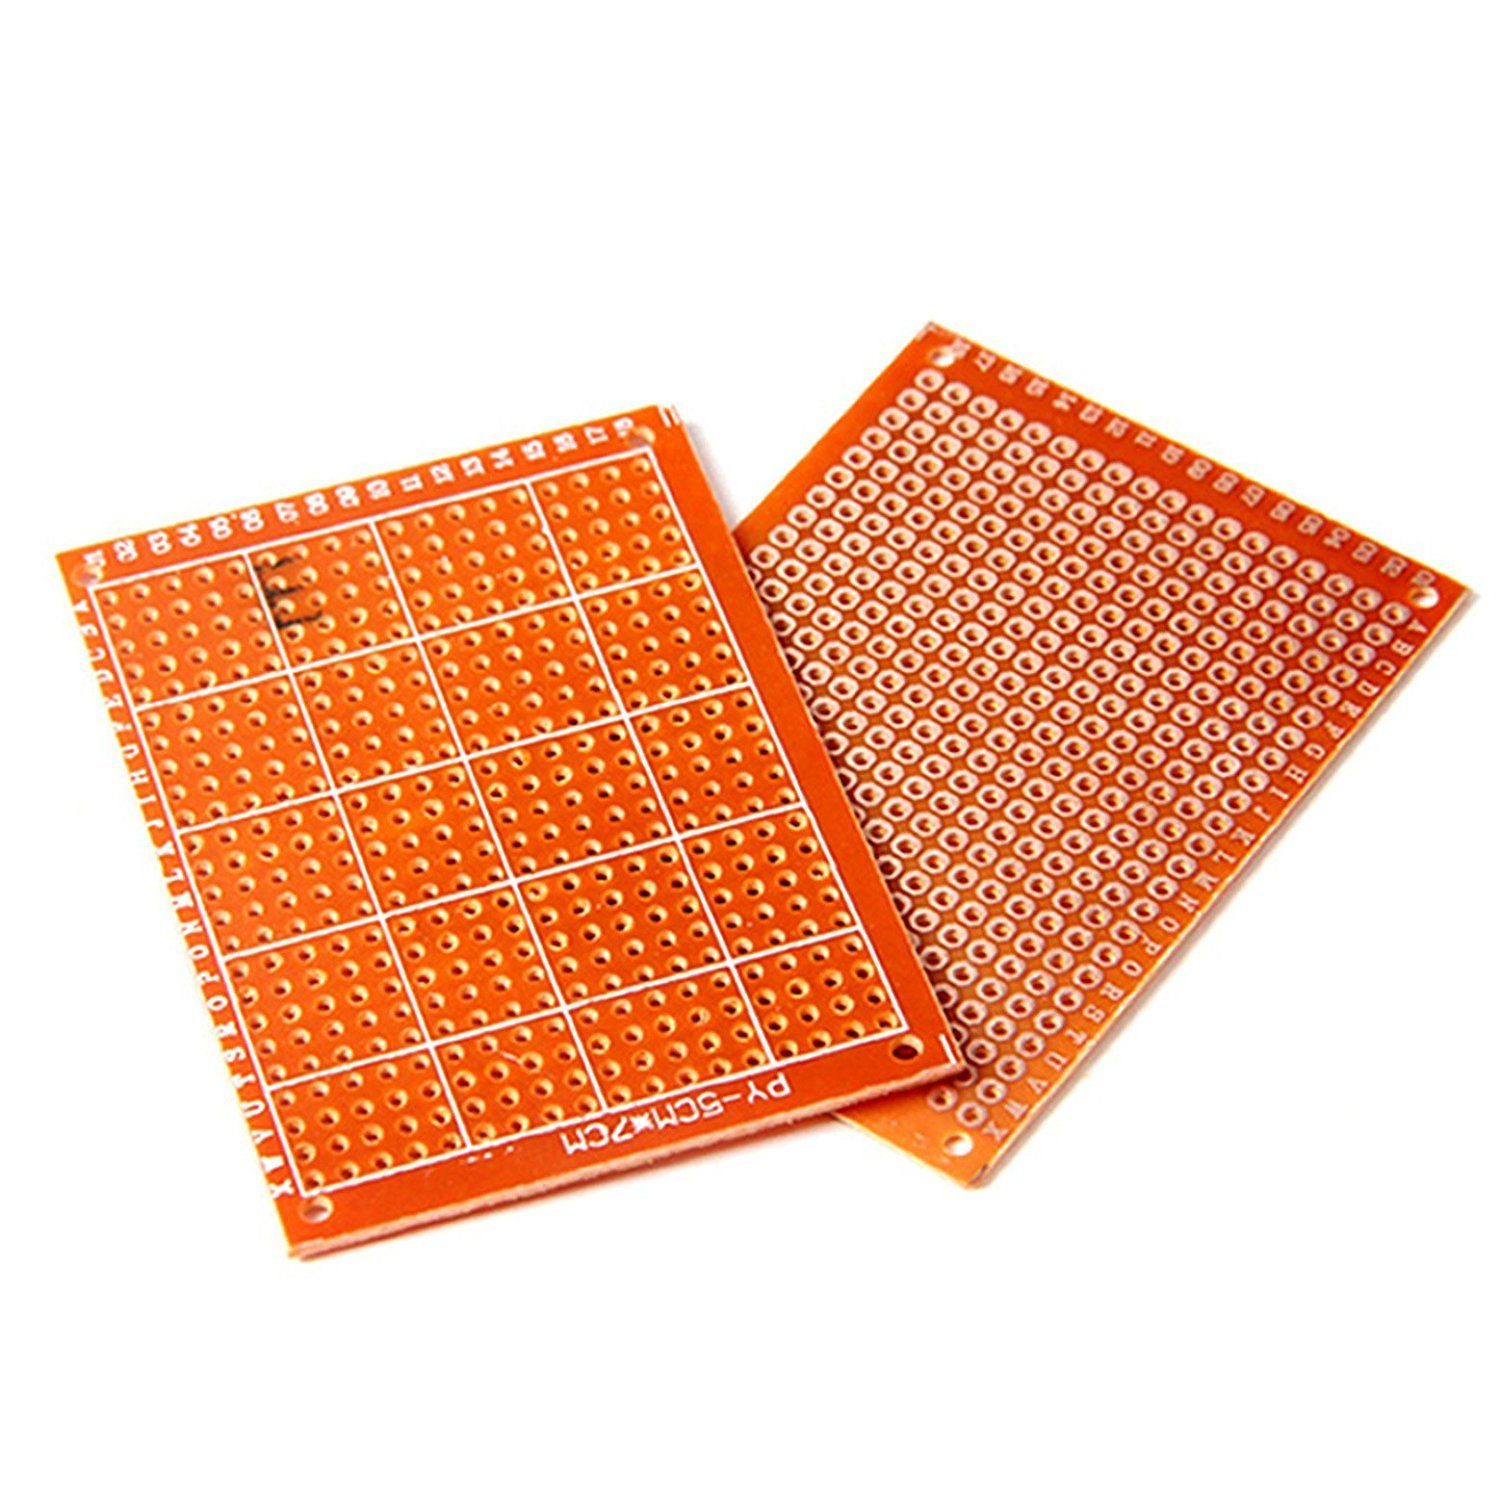 Solder Finished Prototype PCB for DIY 5x7cm Circuit Board Breadboard